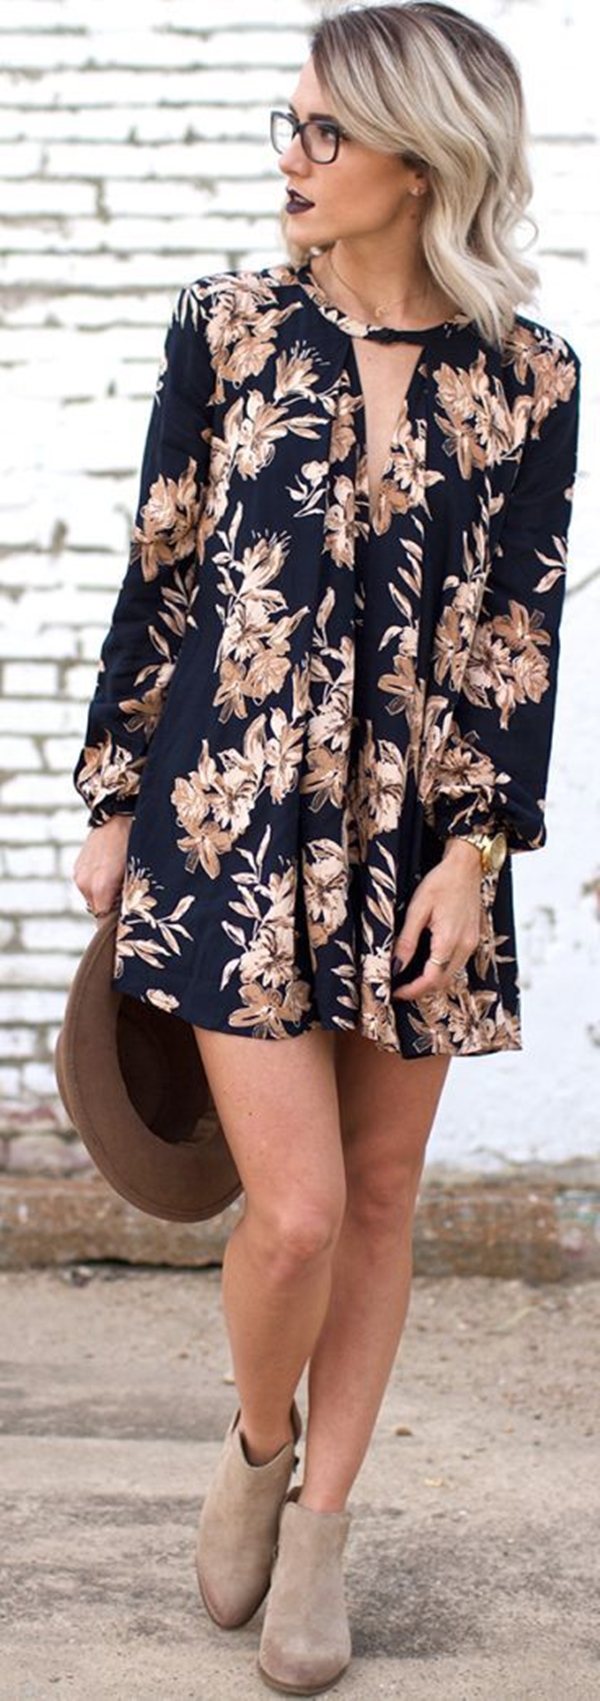 40 Spring Fashion Outfits 2018 - Classy and Fabulous